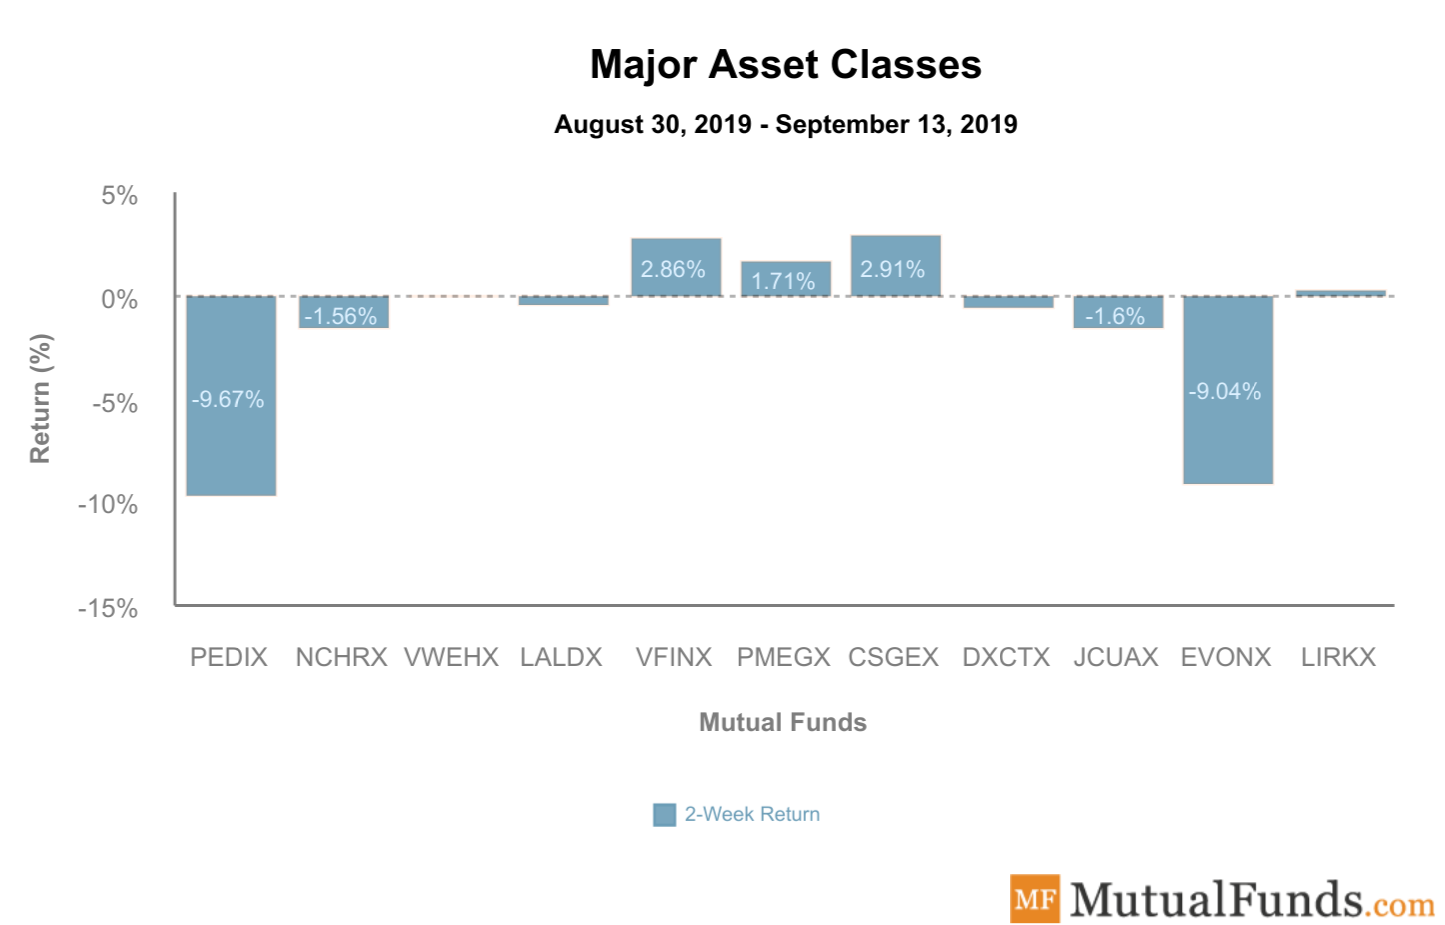 Major Asset Classes September 17 2019